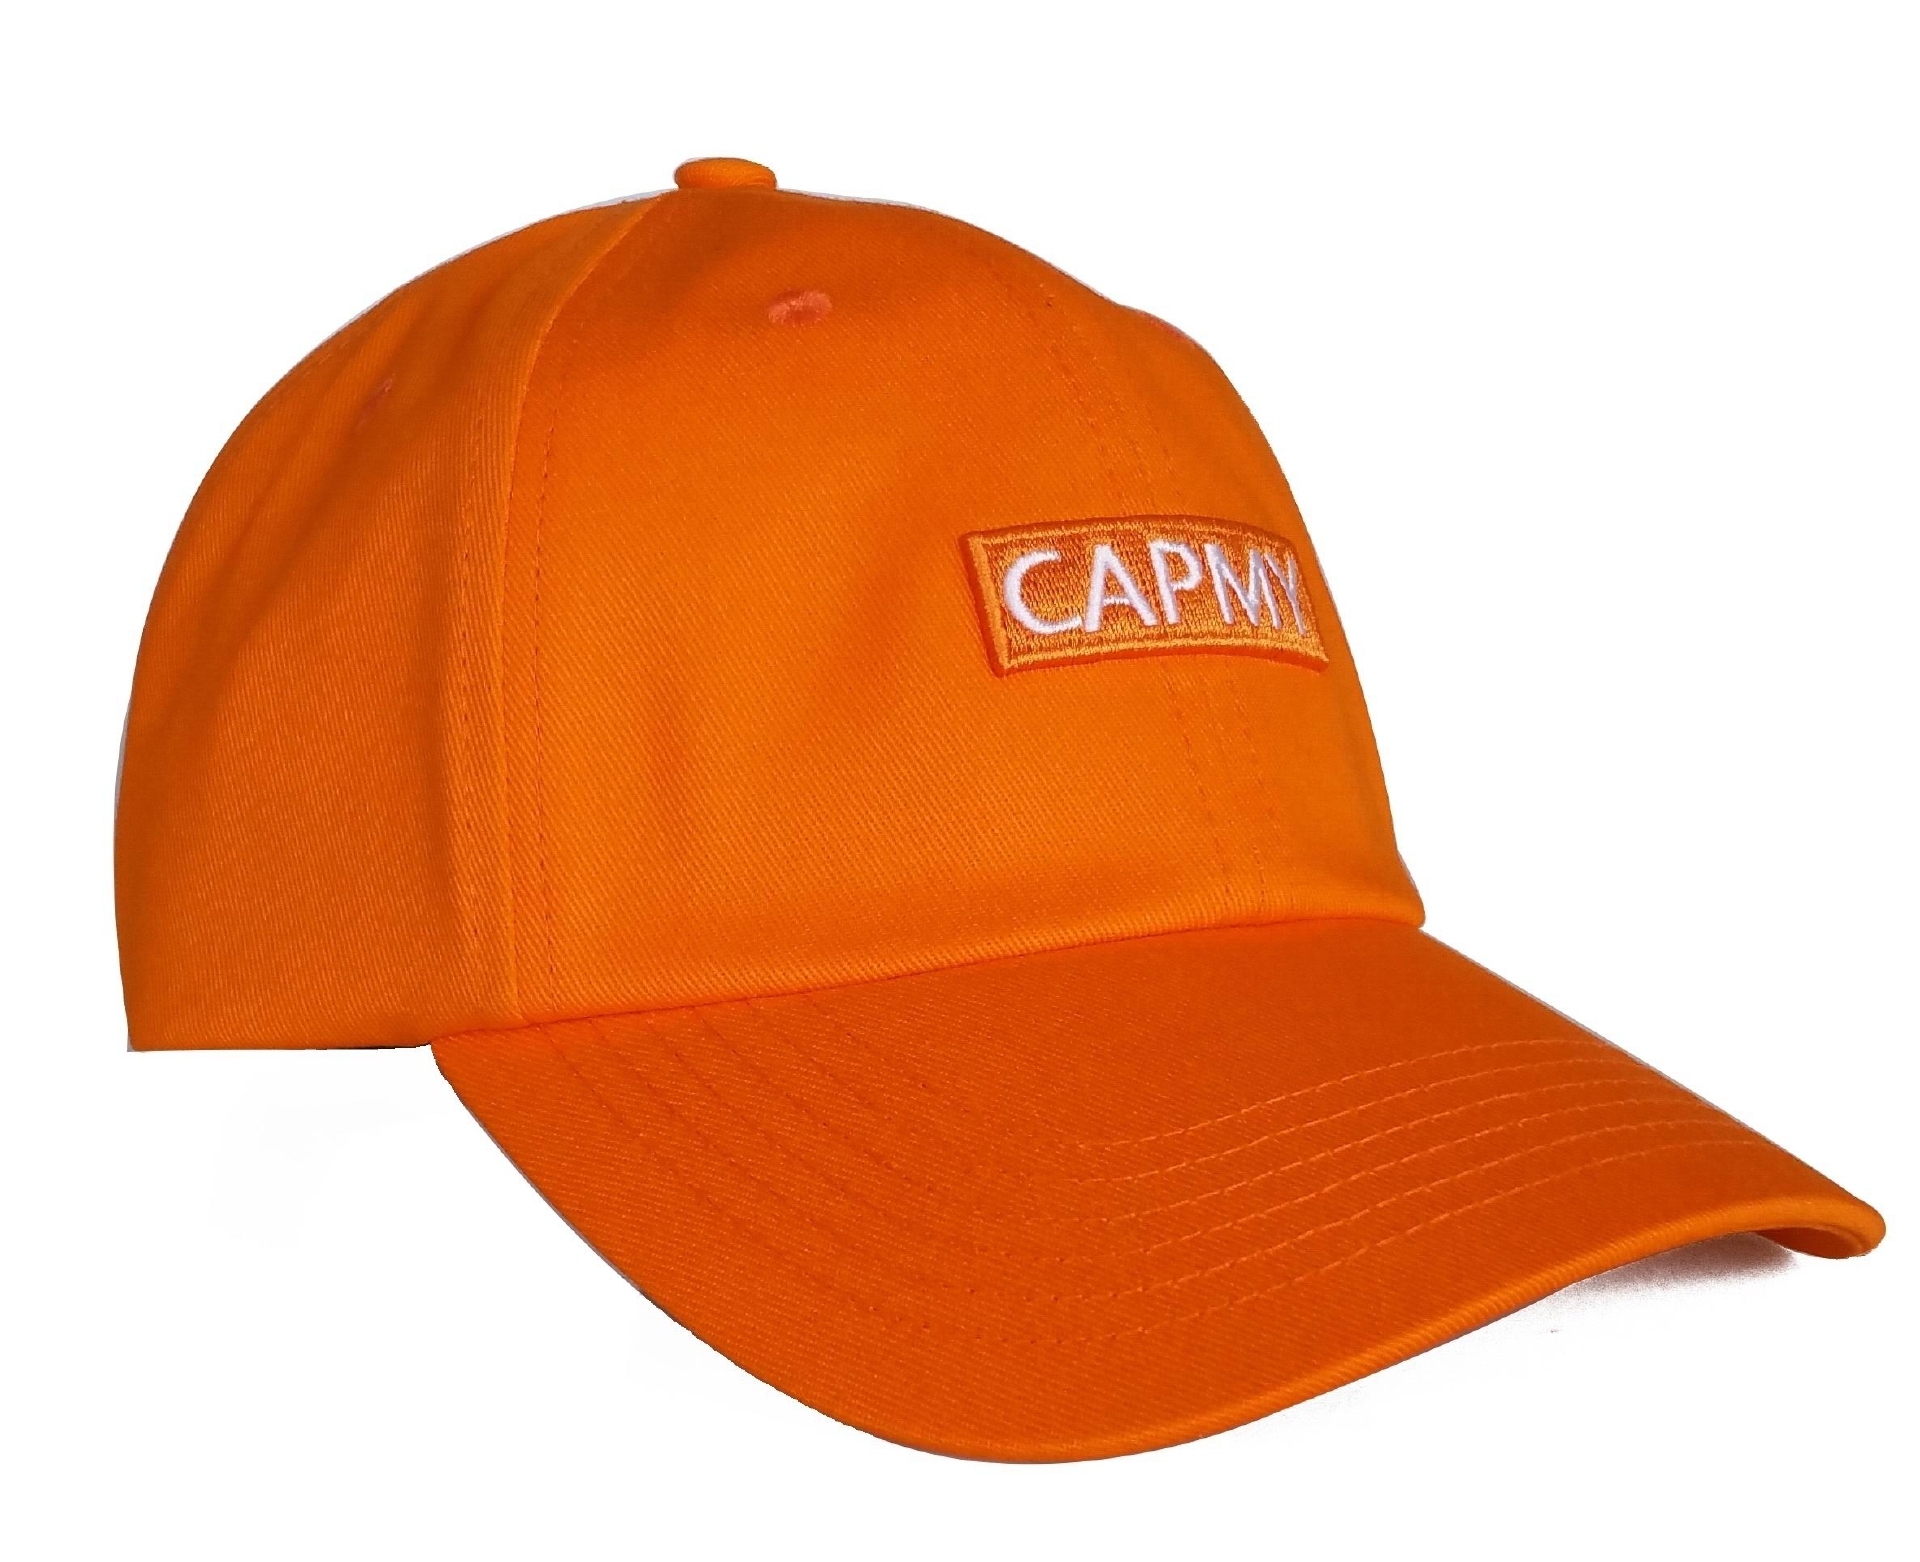 Custom orange cotton dad hat manufacturer baseball cap